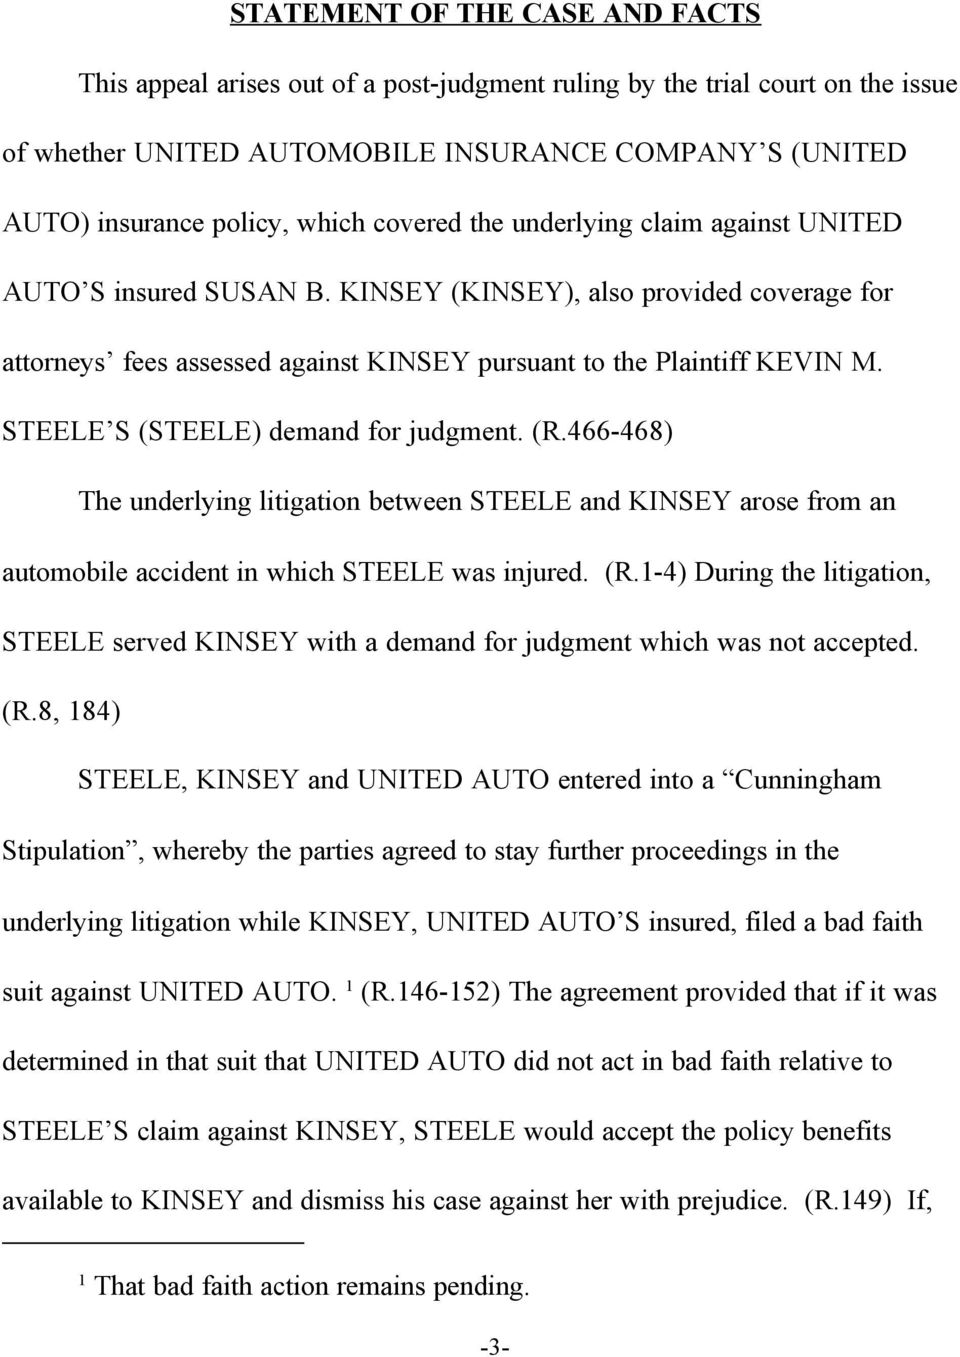 STEELE S (STEELE) demand for judgment. (R.466-468) The underlying litigation between STEELE and KINSEY arose from an automobile accident in which STEELE was injured. (R.1-4) During the litigation, STEELE served KINSEY with a demand for judgment which was not accepted.